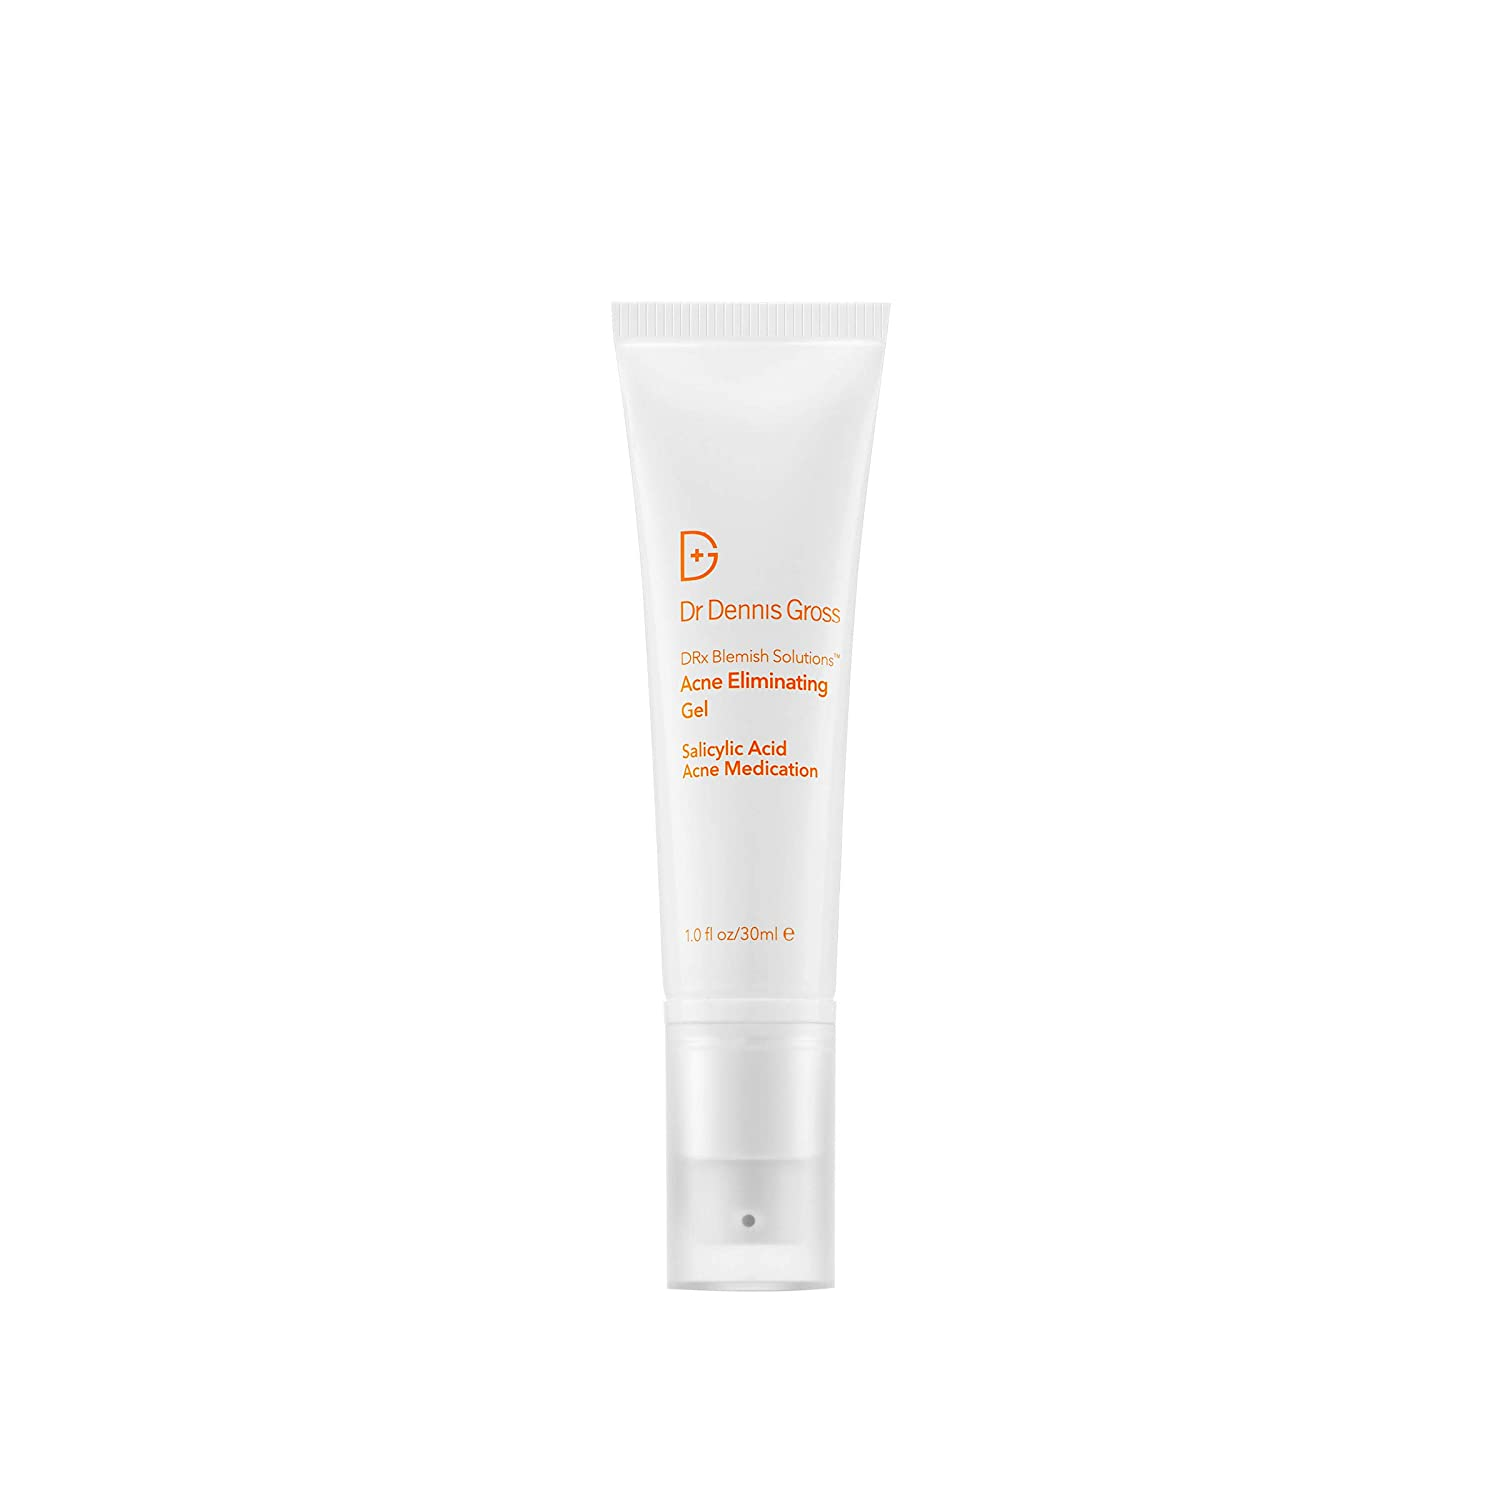 Dr Dennis Gross DRx Blemish Solutions Acne Eliminating Gel: for Frequent Breakouts, Congestion, Bumpy Texture & Oily